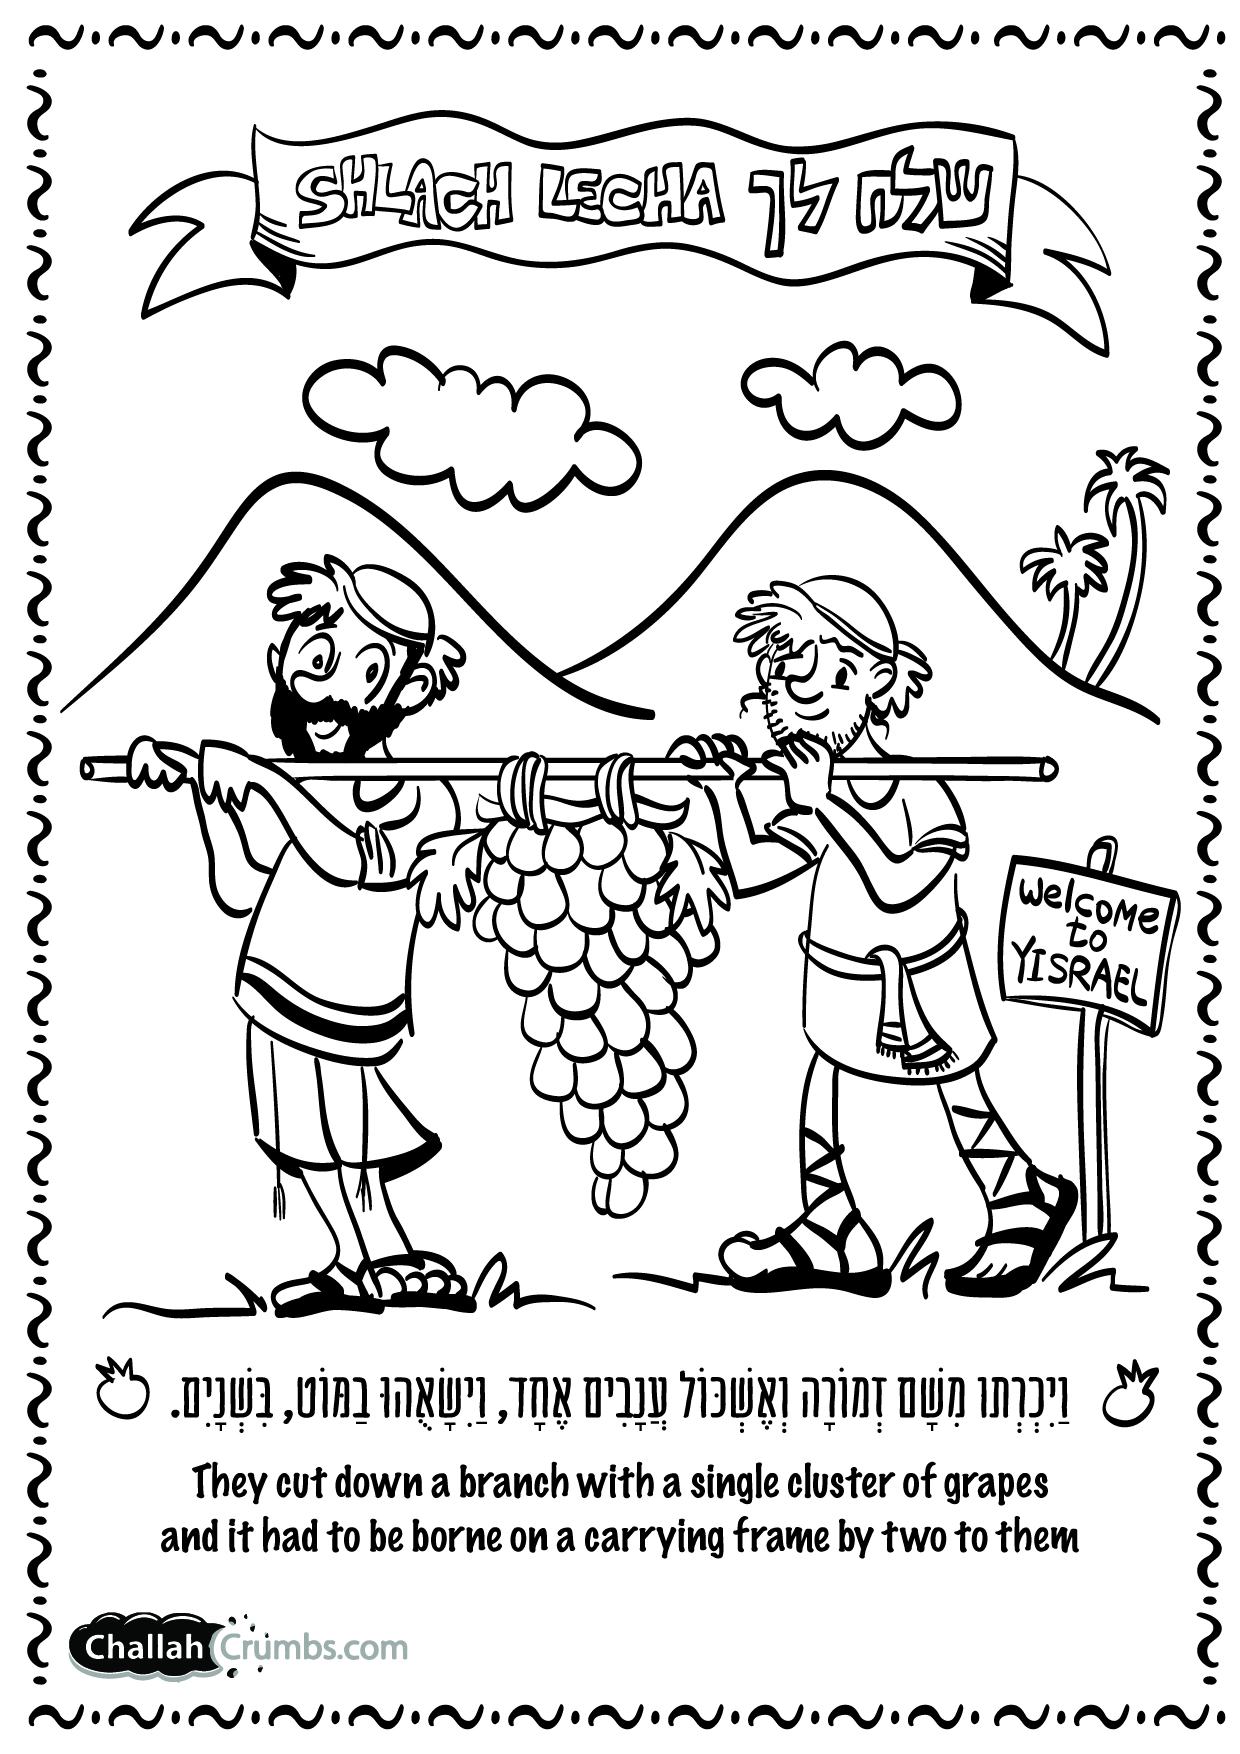 coloring pages shlach click on picture to print challah crumbs